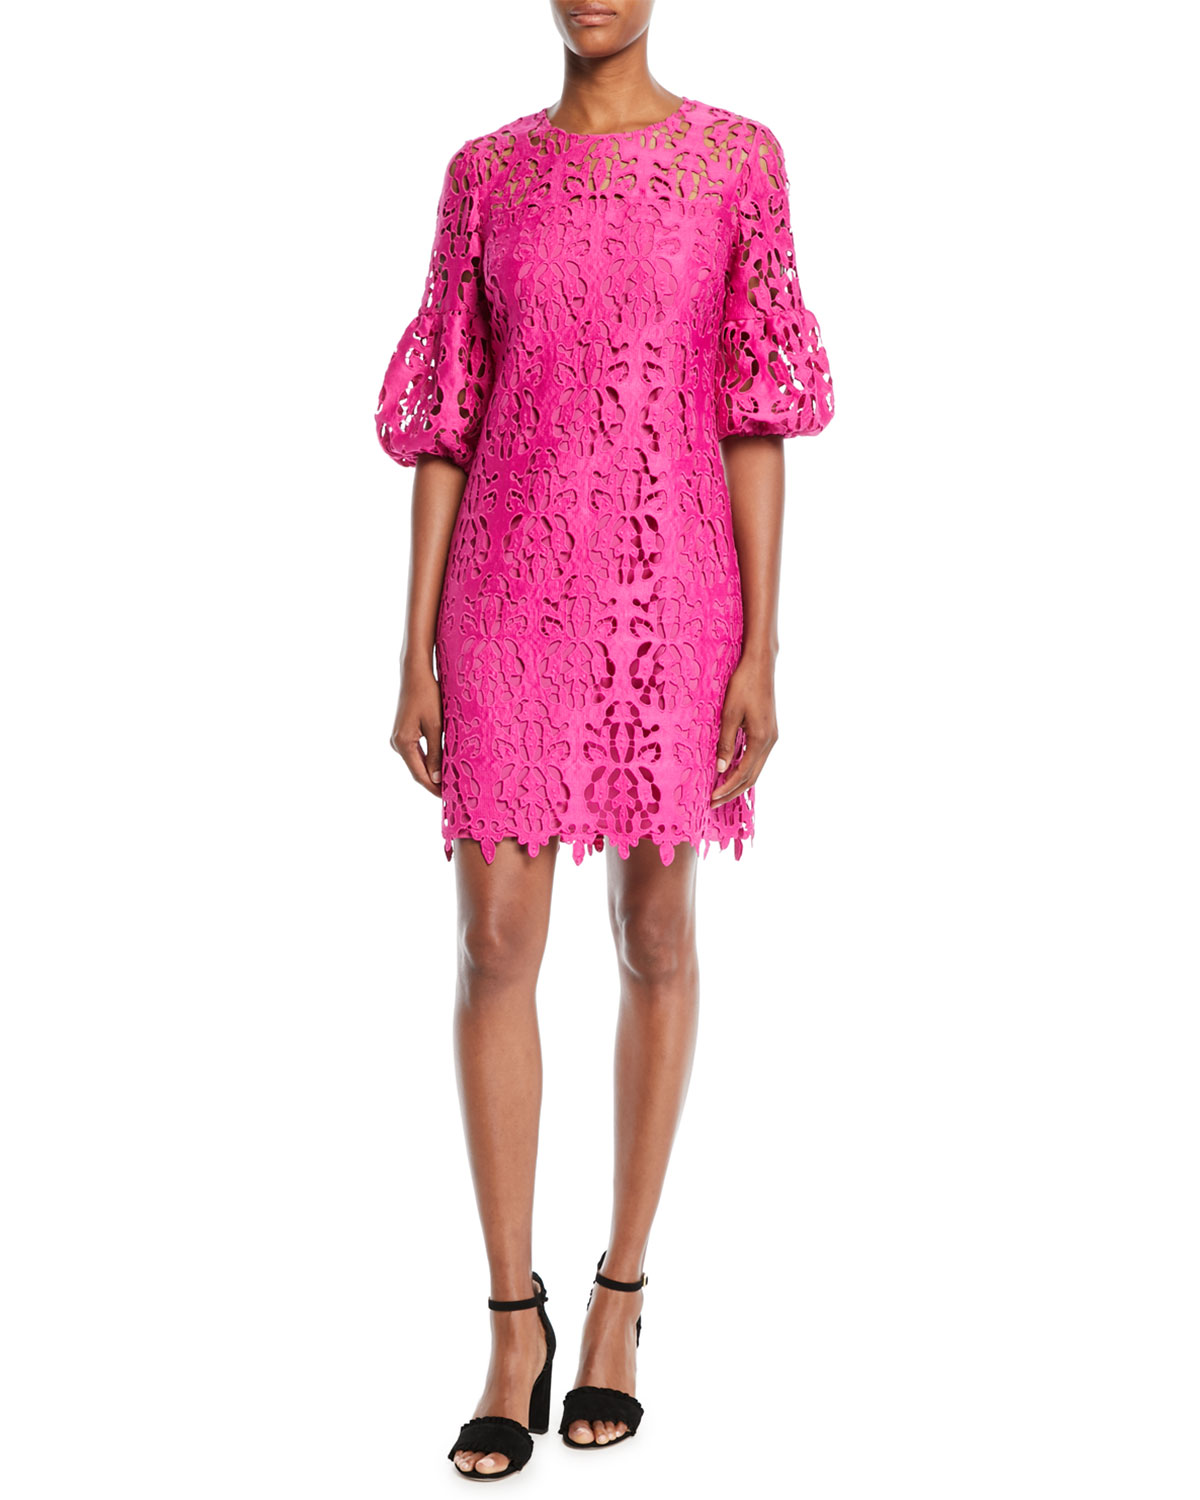 Vina Lace Dress W Bell Sleeves